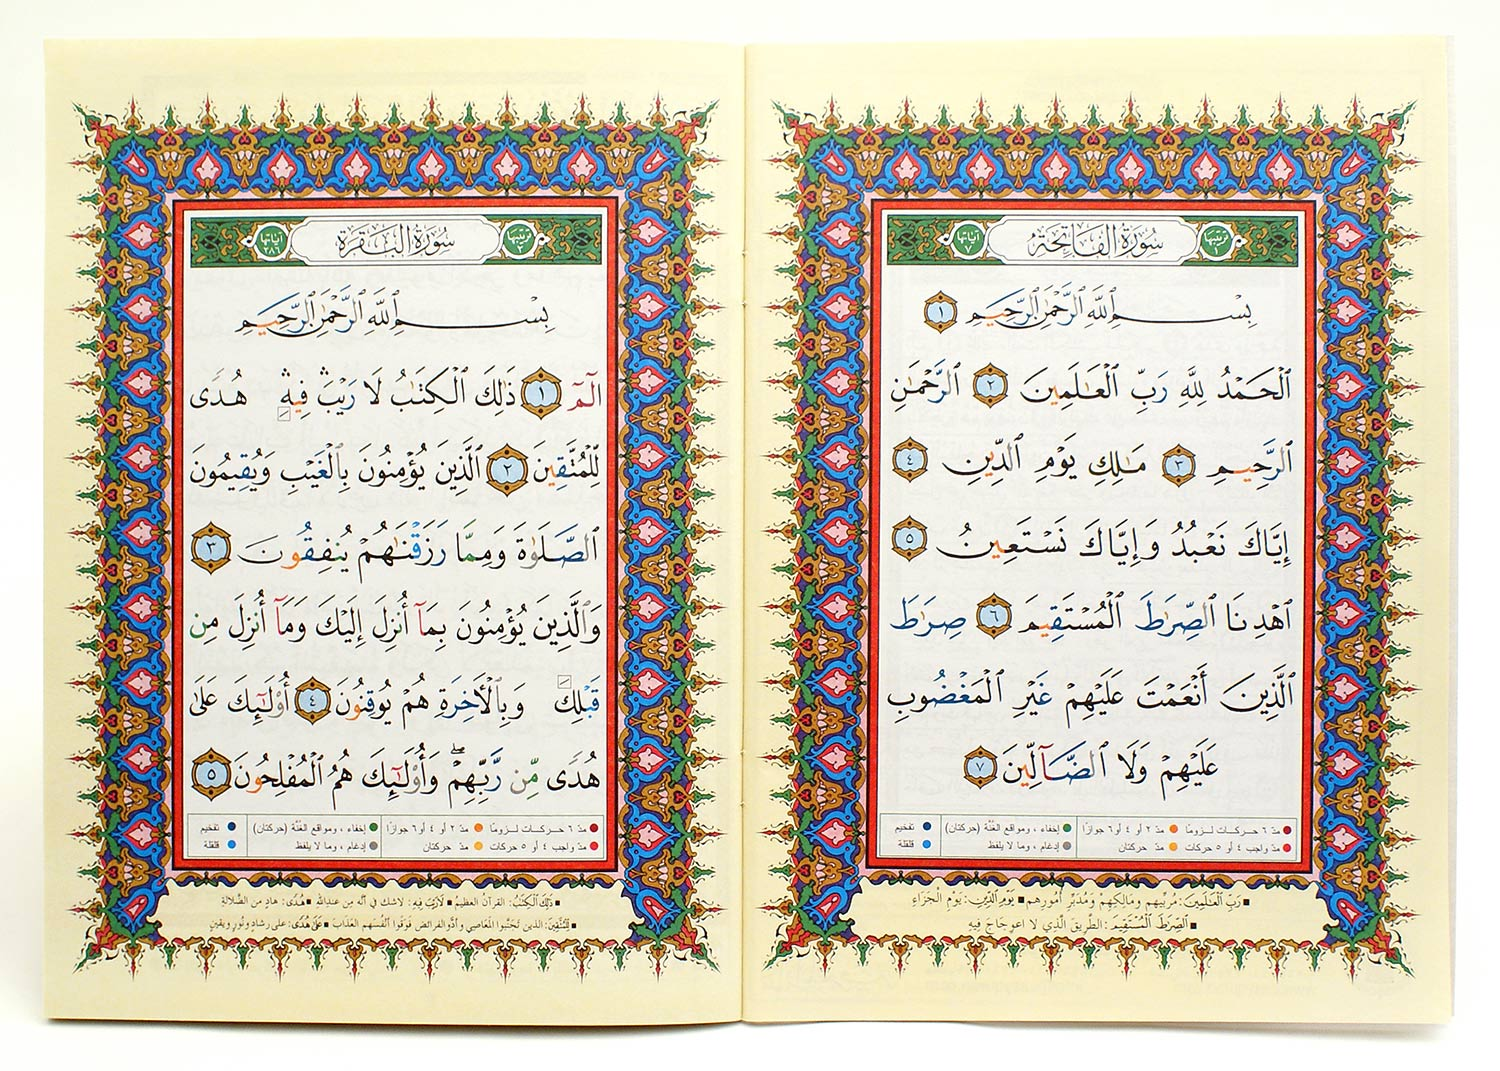 al baqara sourah from the quran